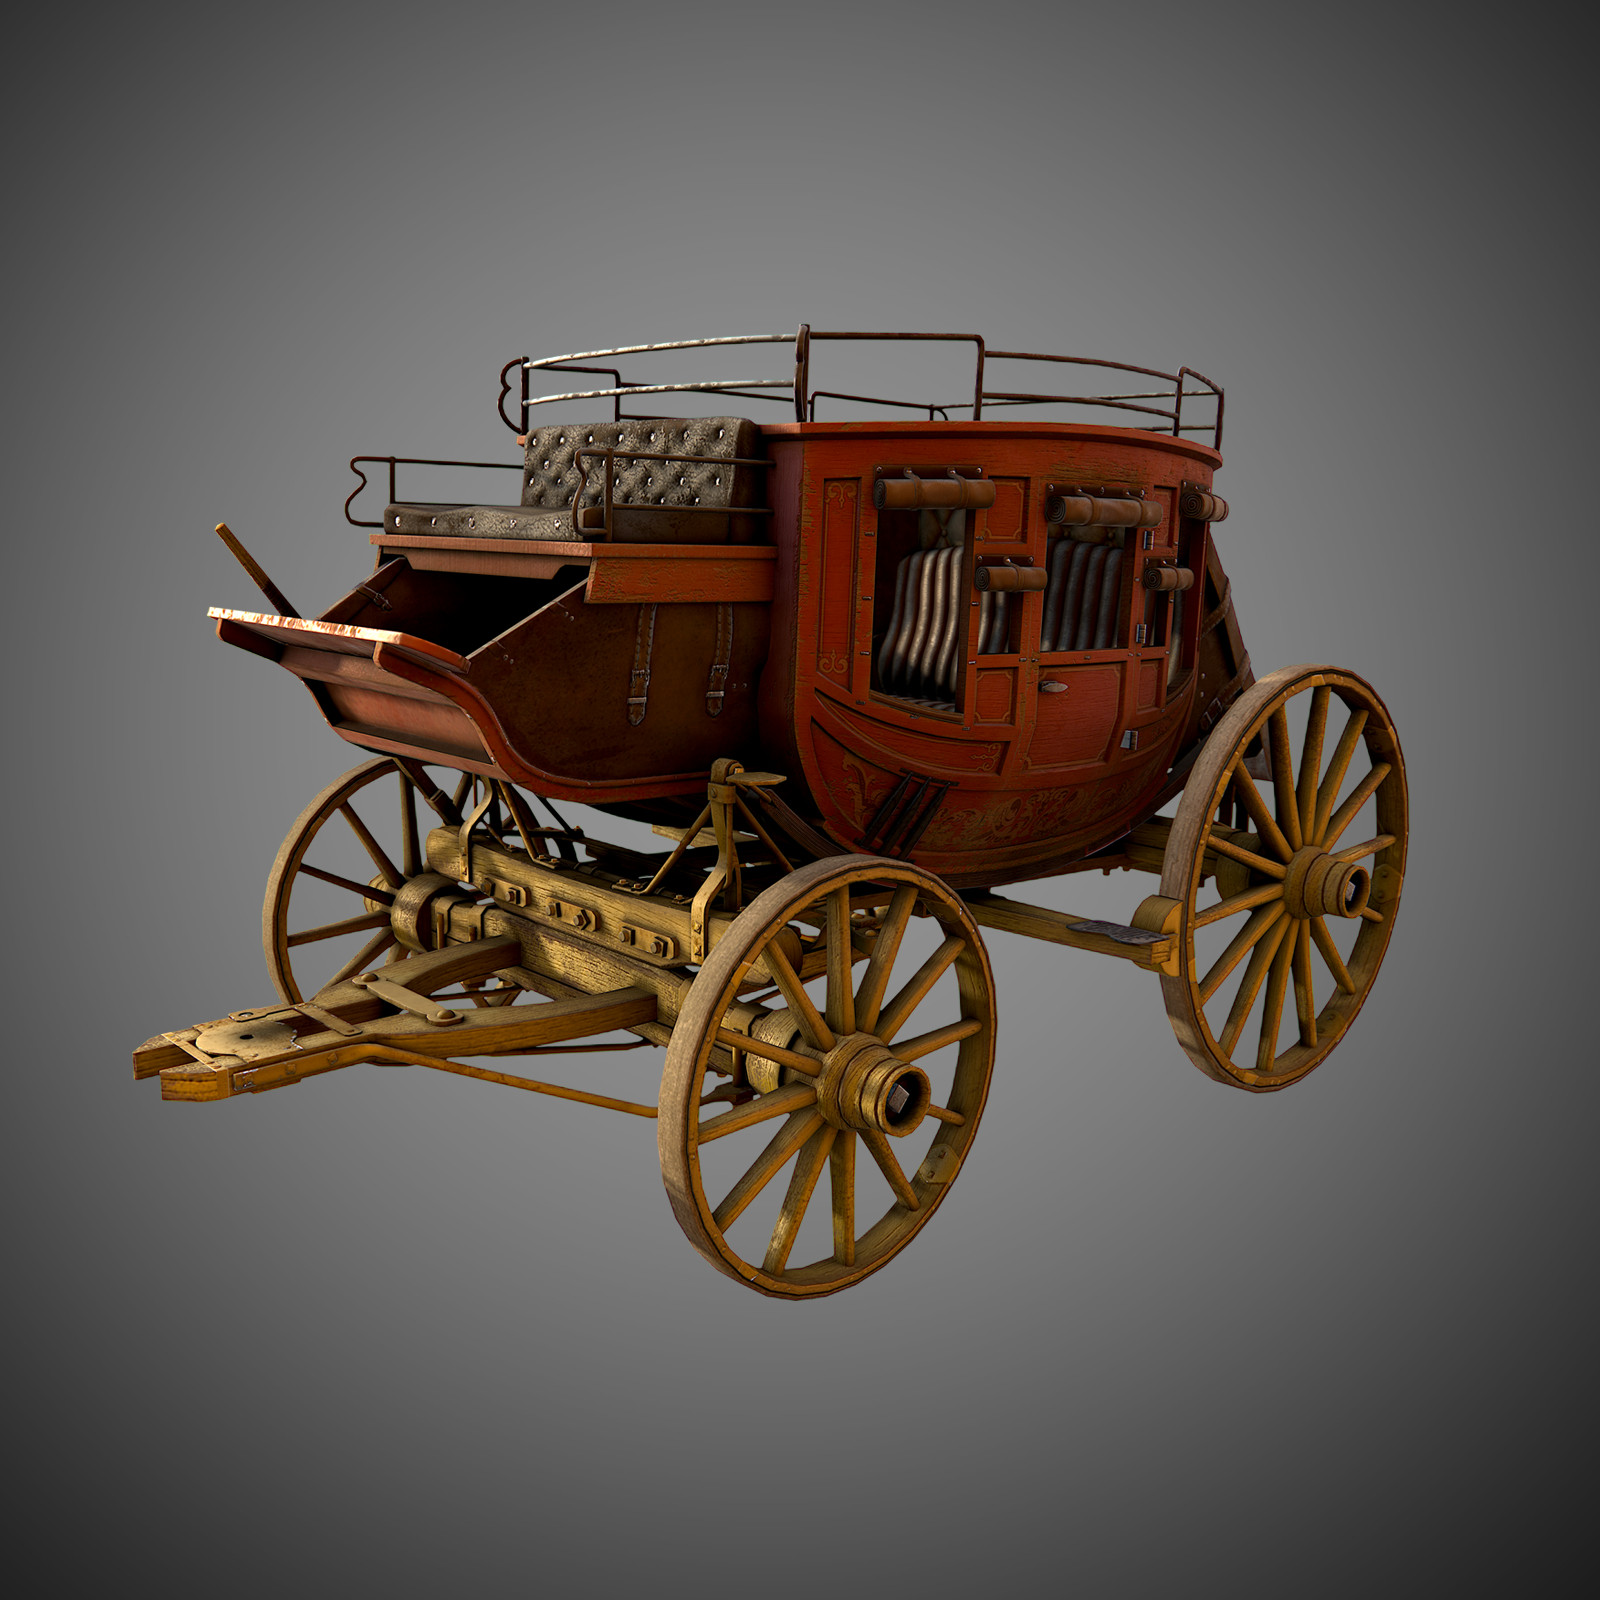 Paul fish stagecoach render 04